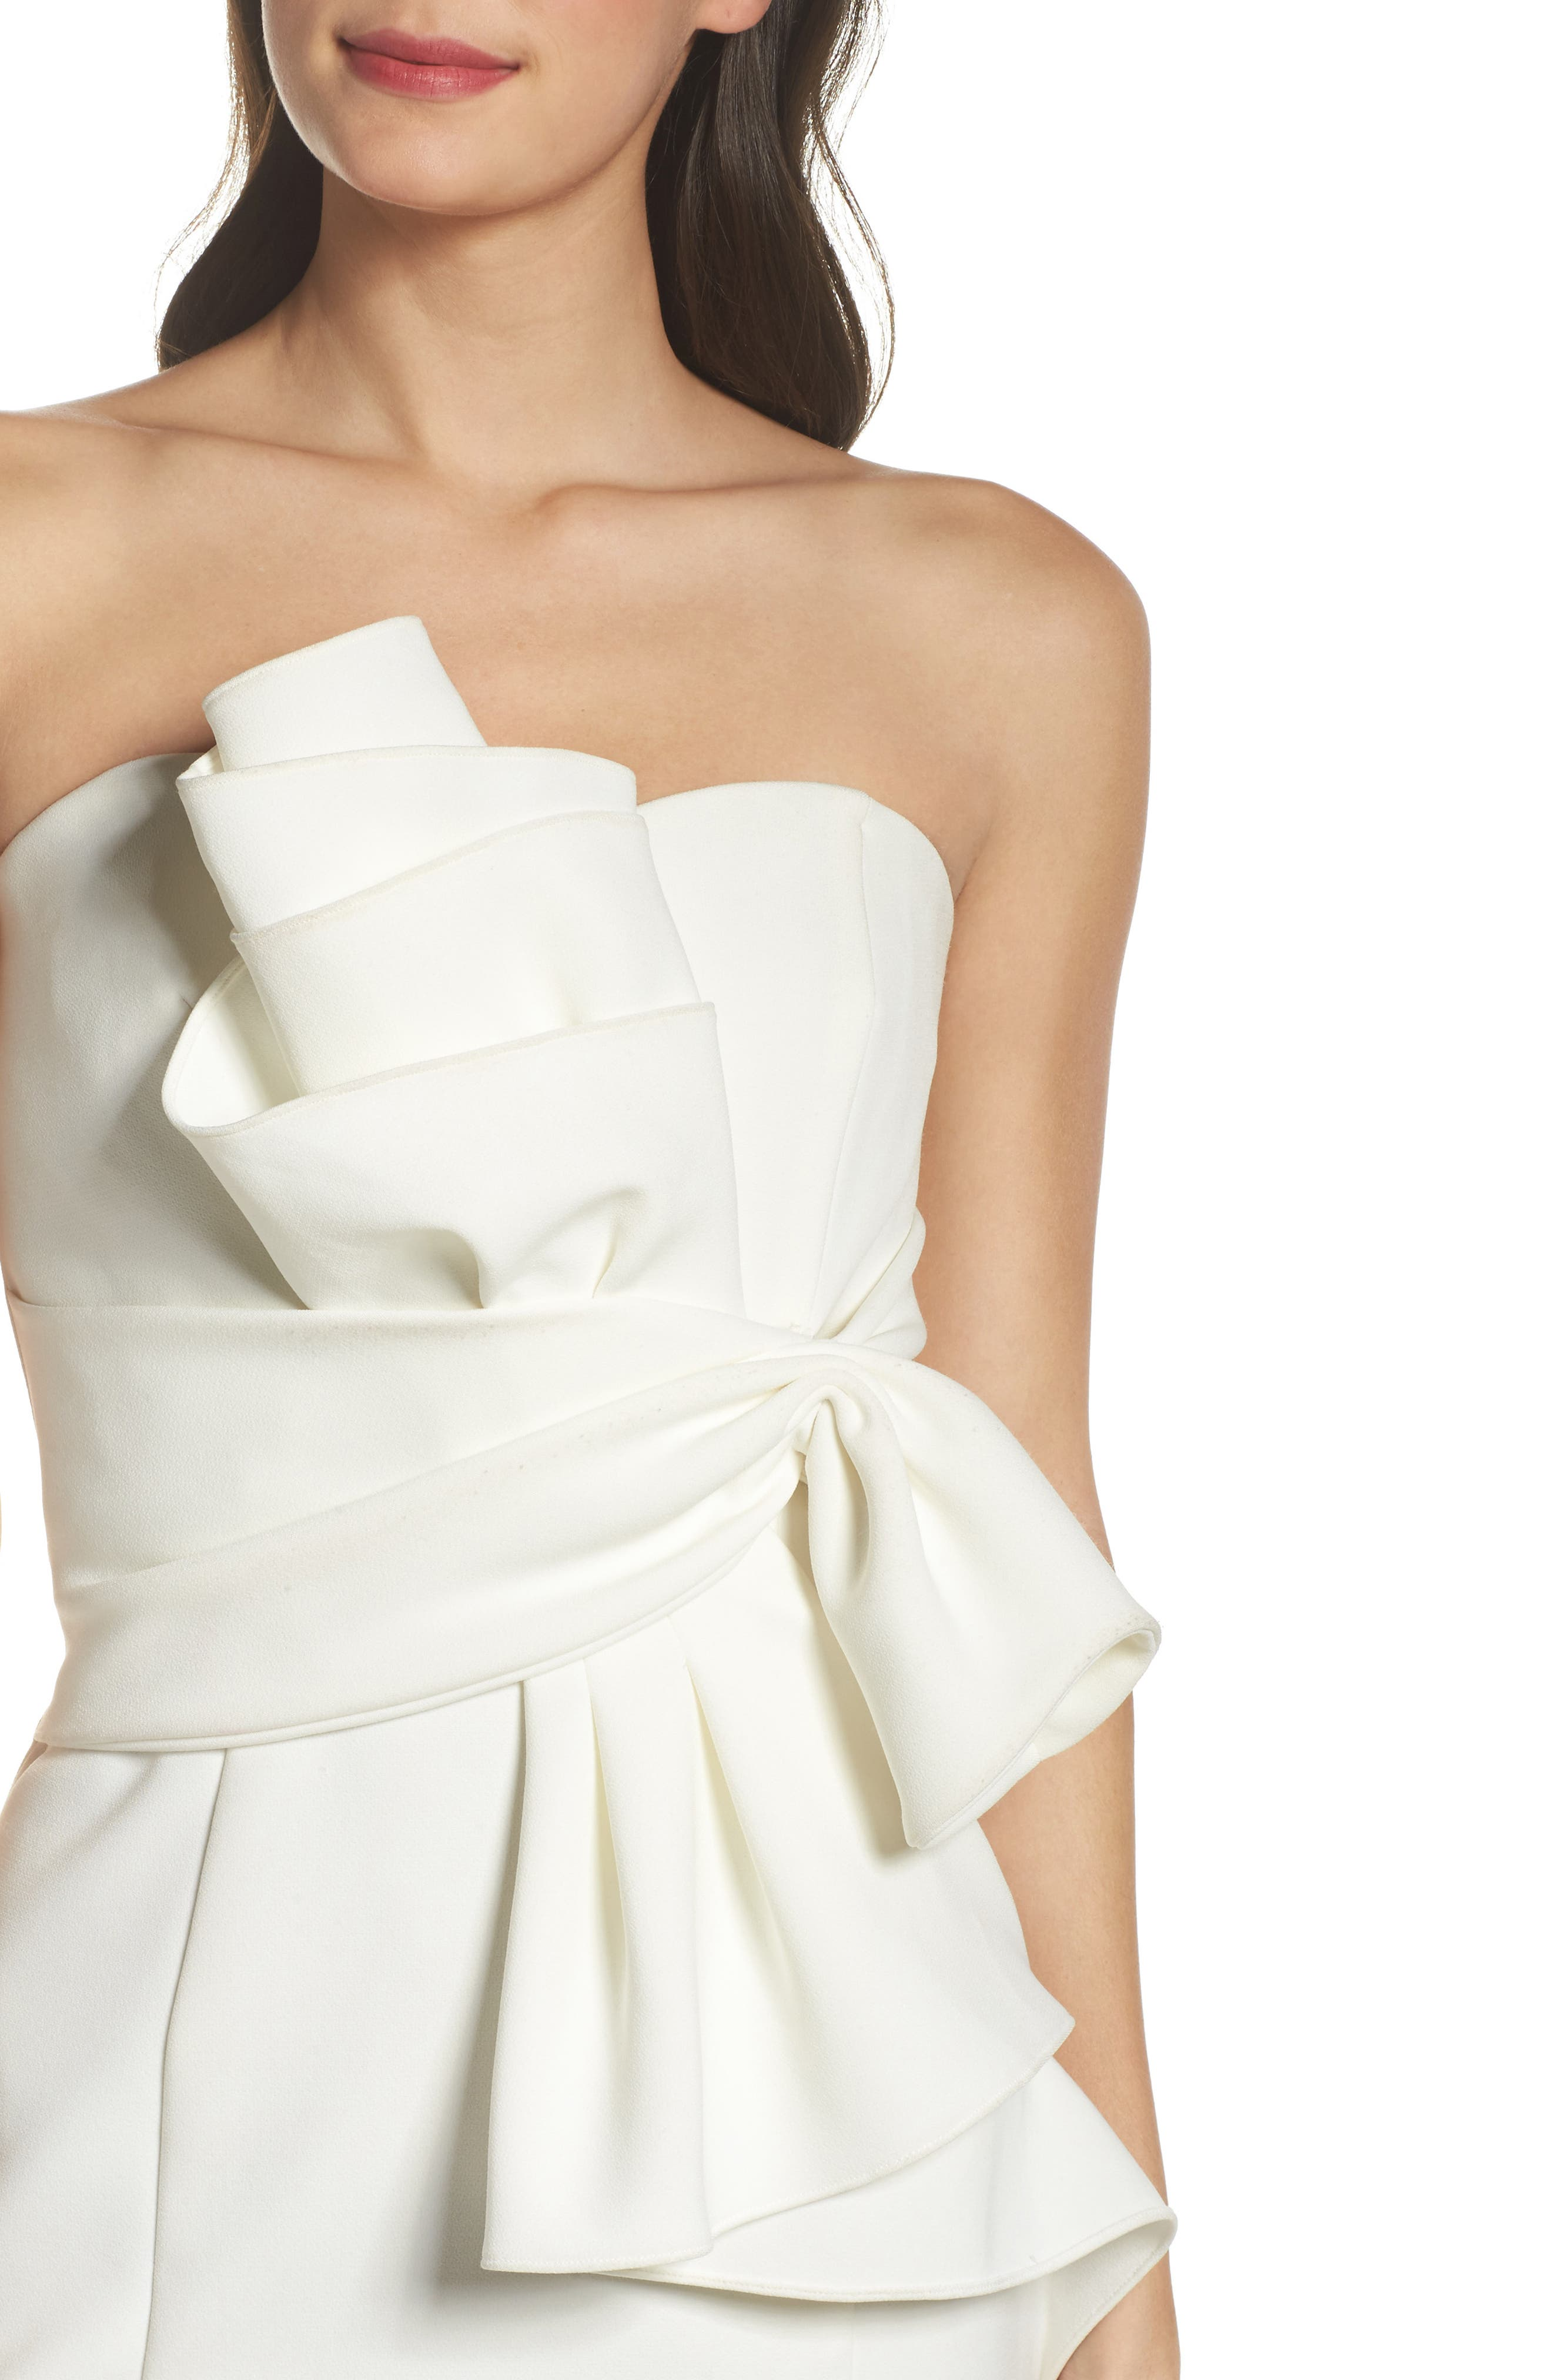 Sculpture Flower Cocktail Dress,                             Alternate thumbnail 4, color,                             Ivory